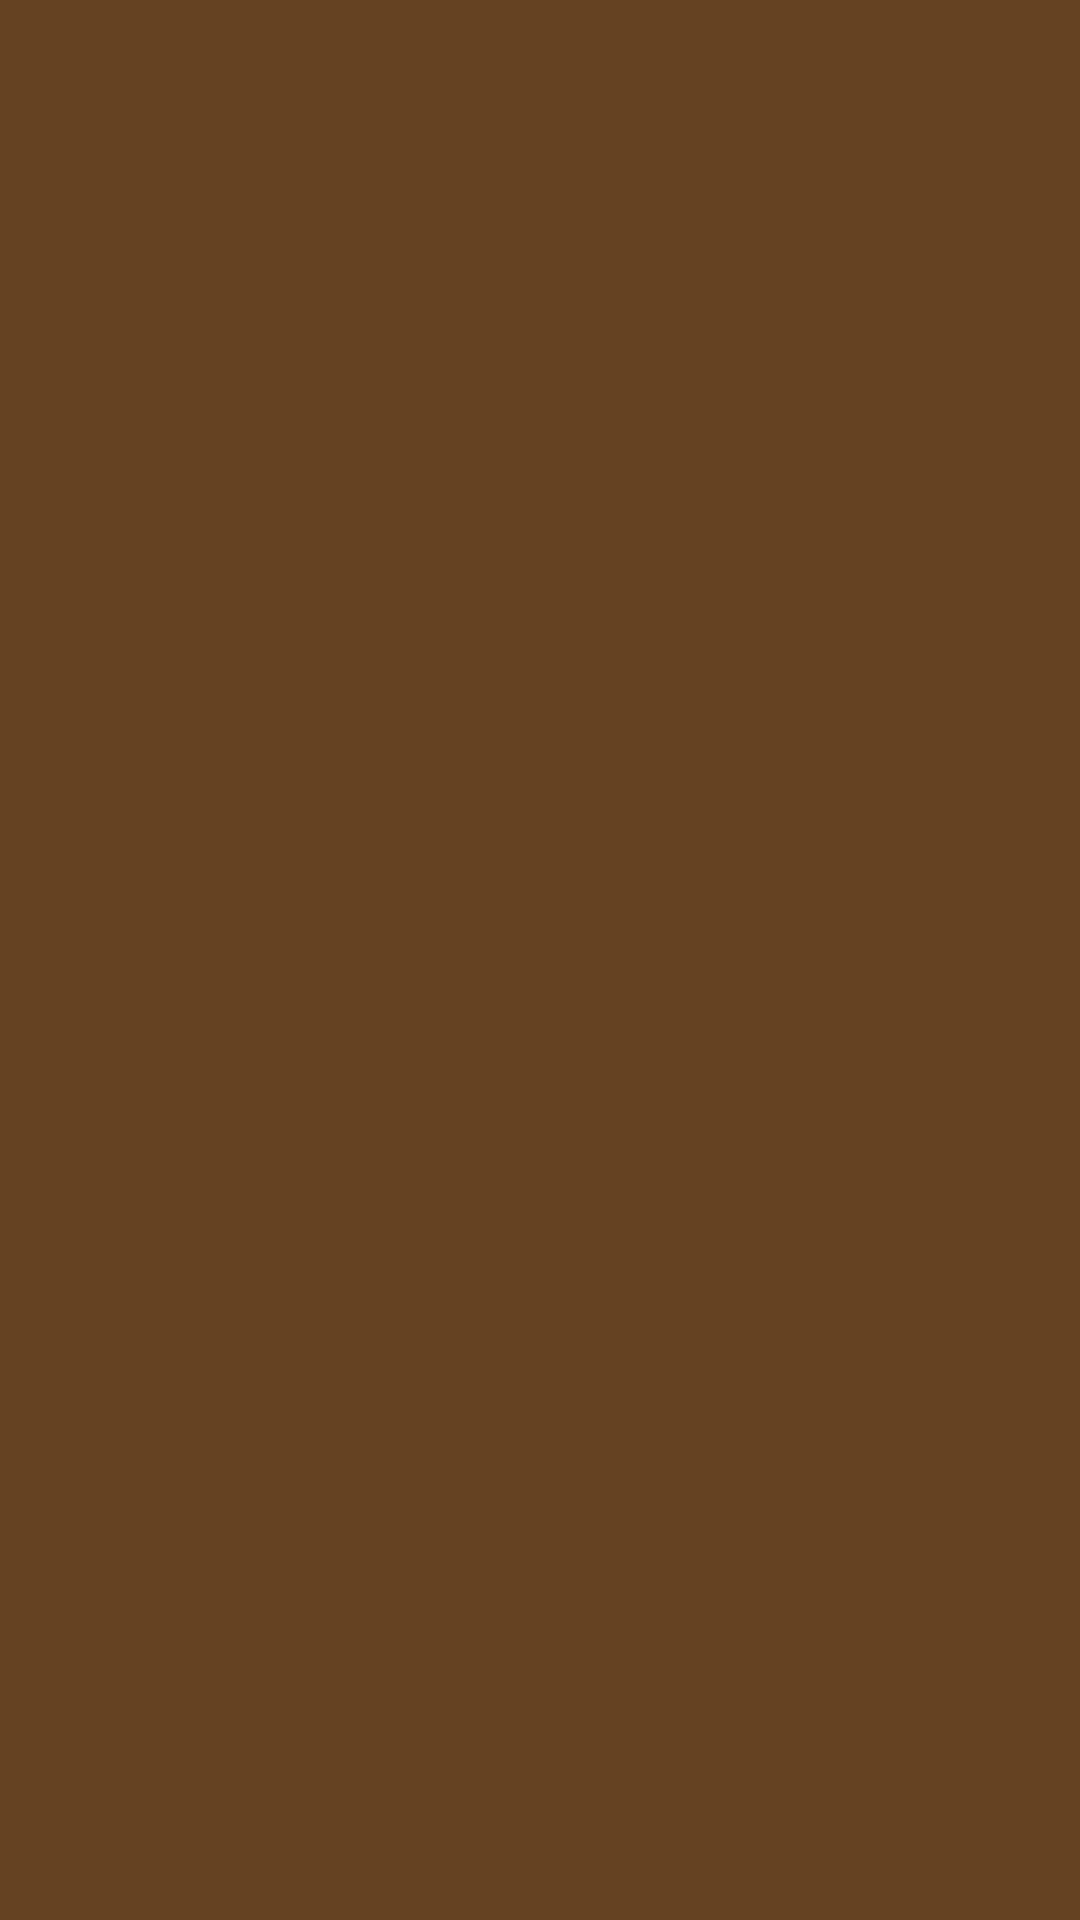 1080x1920 Otter Brown Solid Color Background